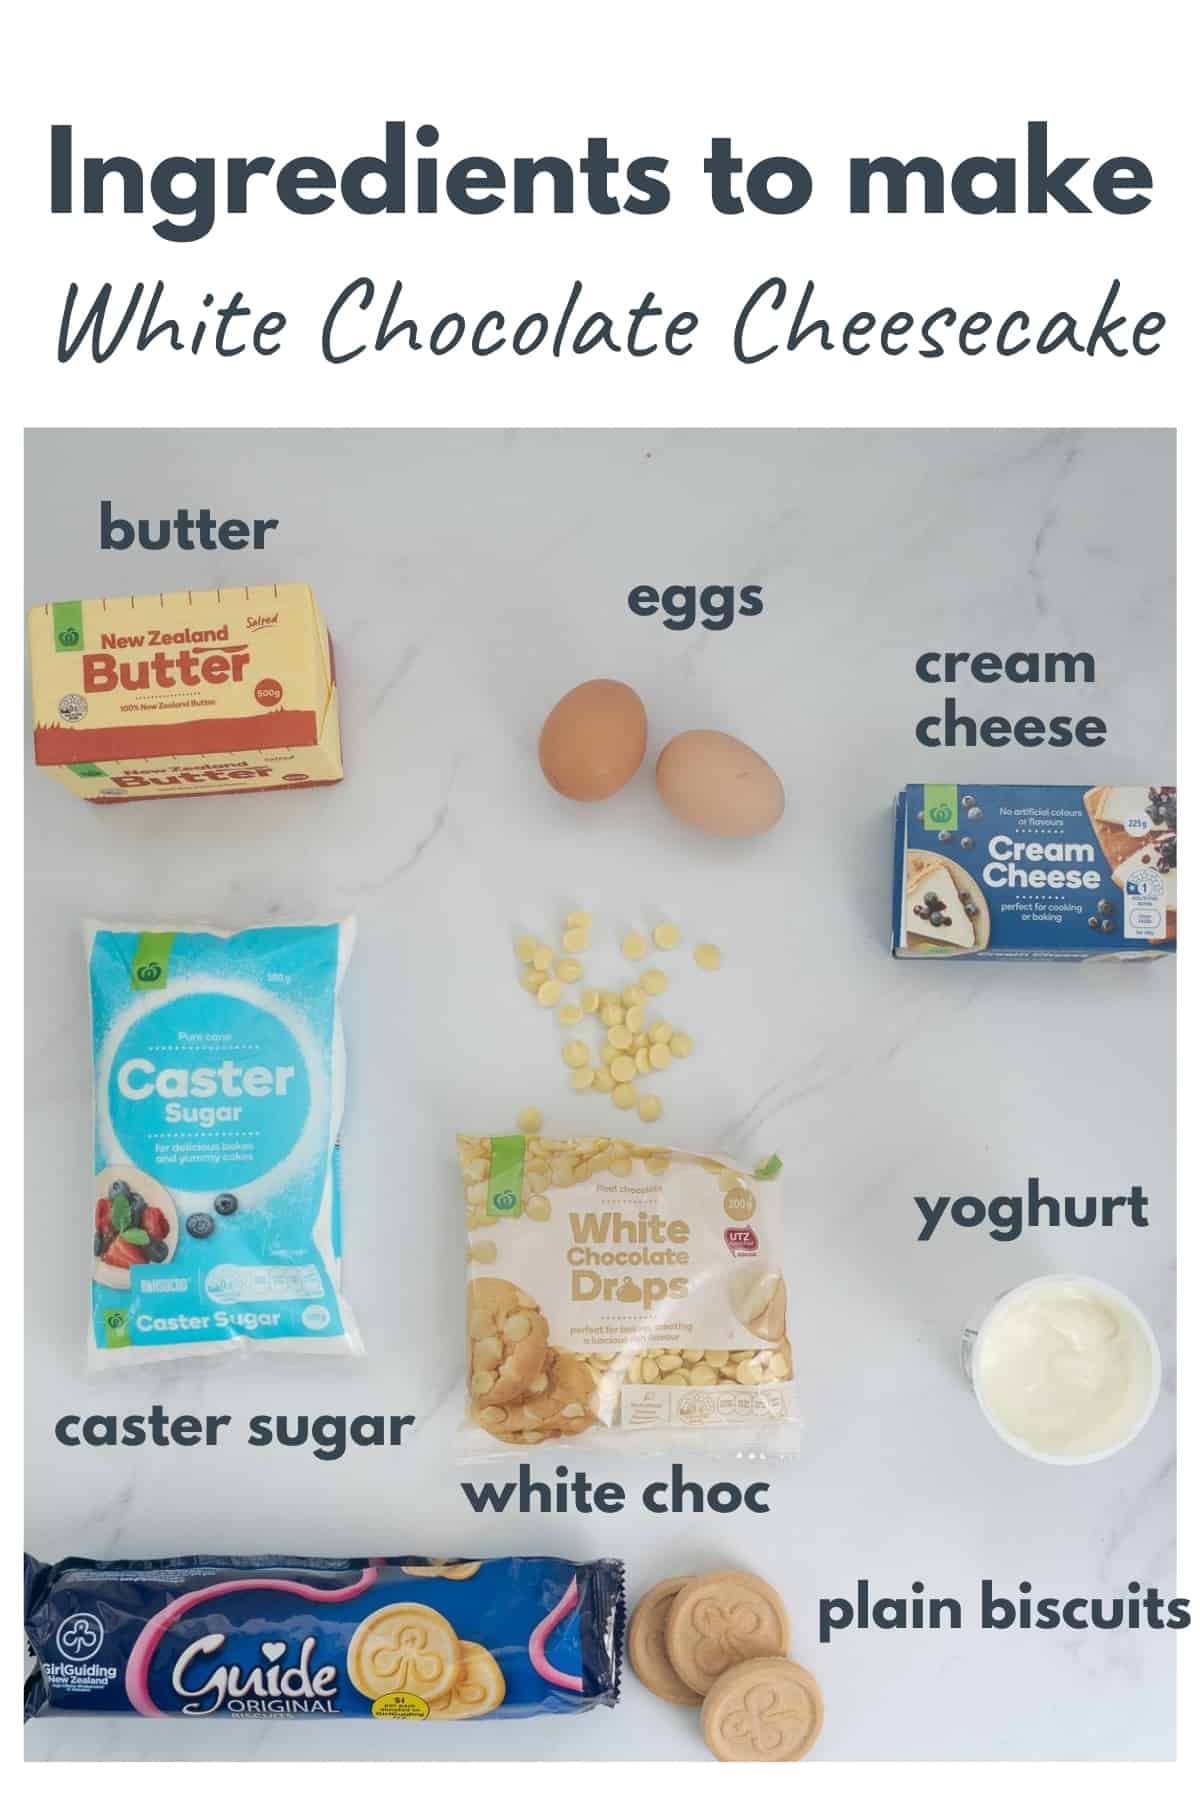 Ingredients to make a white chocolate cheese cake laid out on a bench top with text overlay.